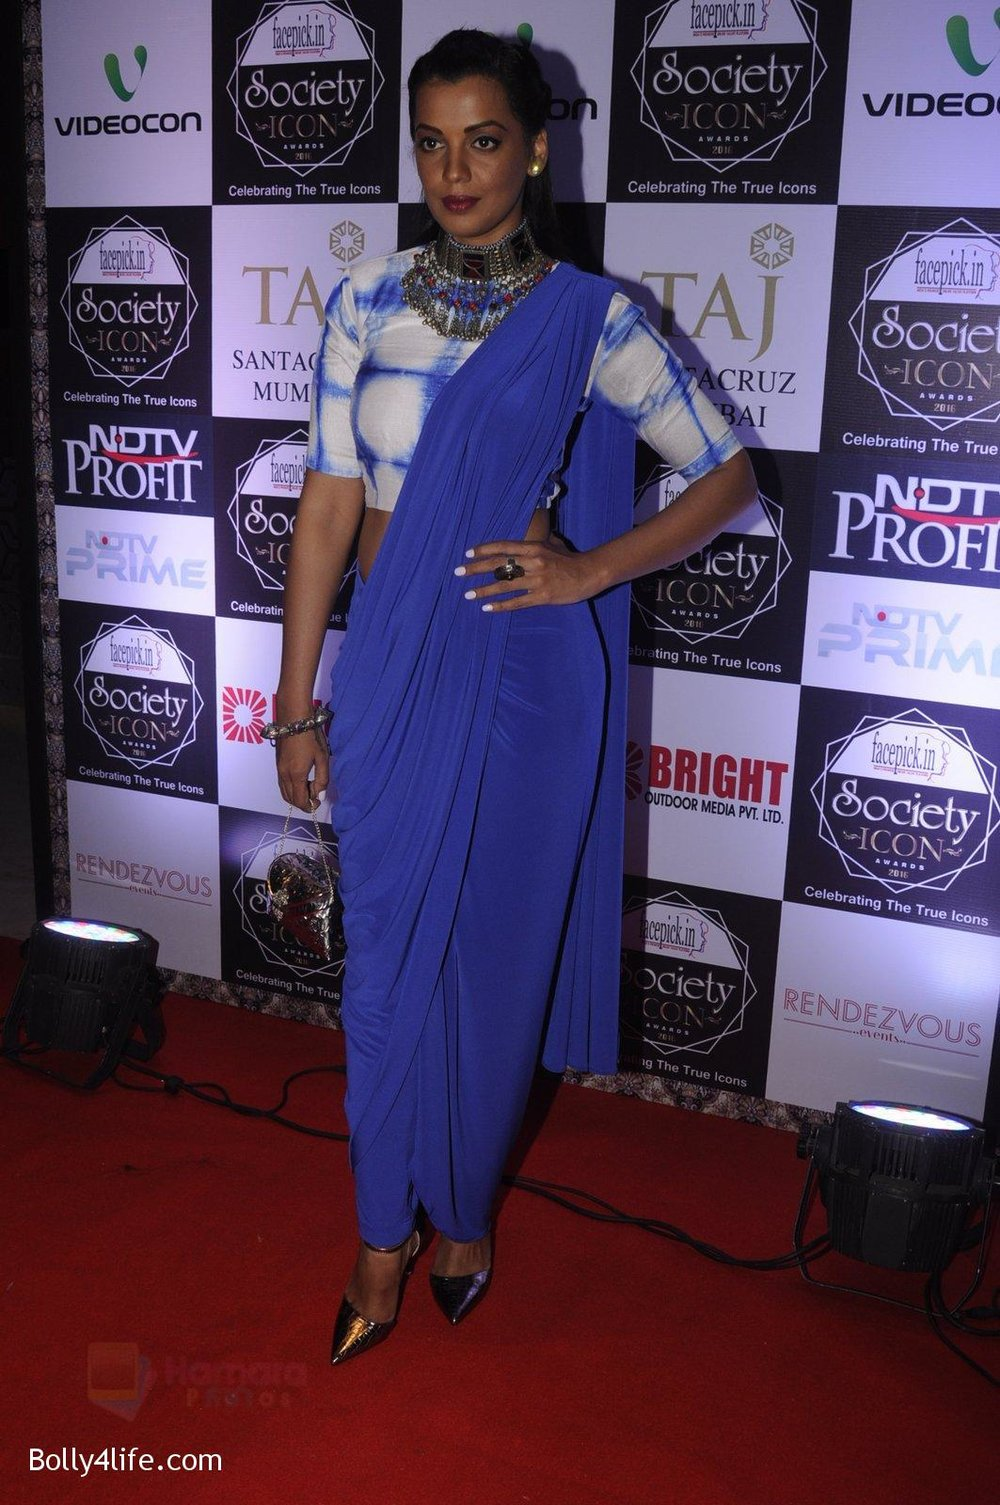 Mugdha-Godse-at-Society-Icon-Awards-on-2nd-Oct-2016-74.jpg